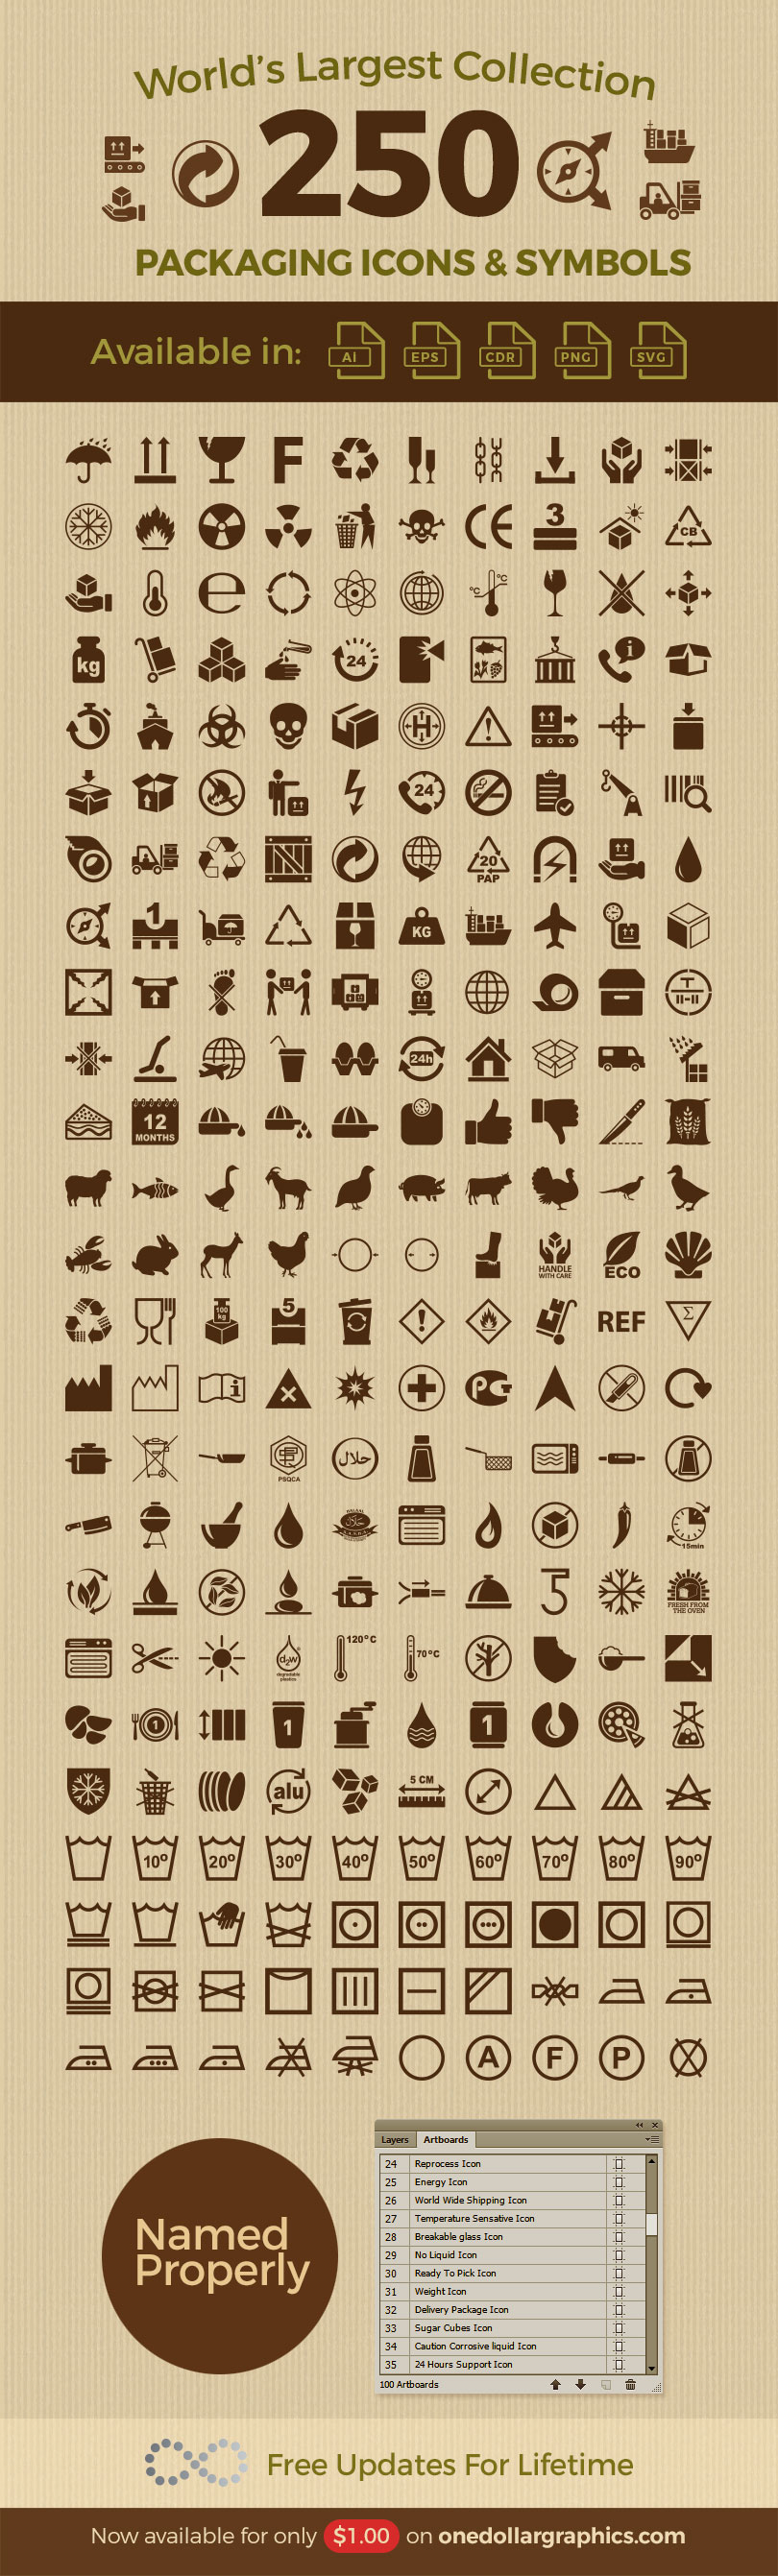 250-most-completed-packaging-icons-pictograms-symbols-1